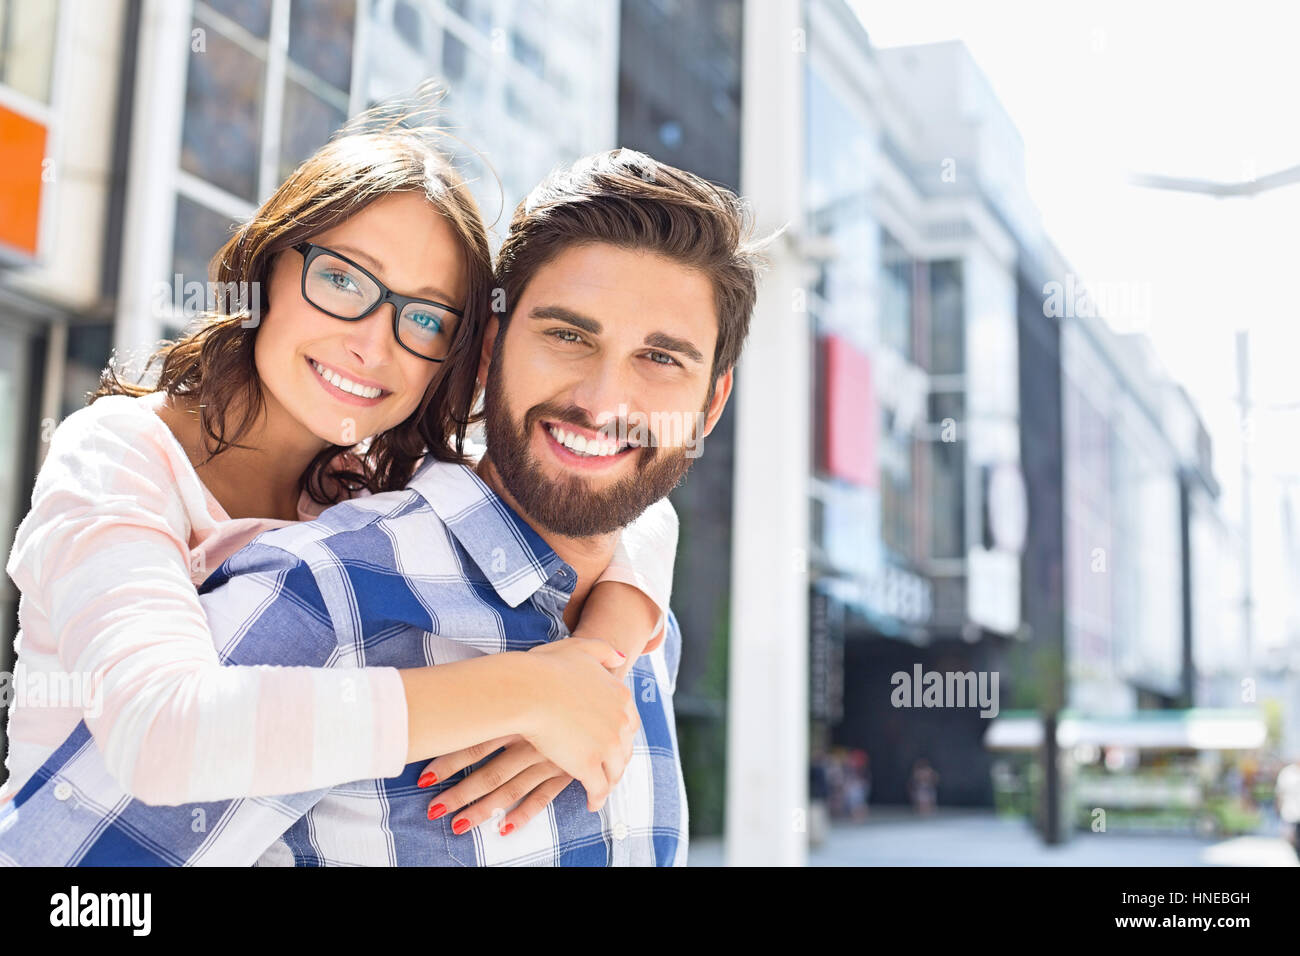 Portrait of happy man giving piggyback ride to woman in city Photo Stock